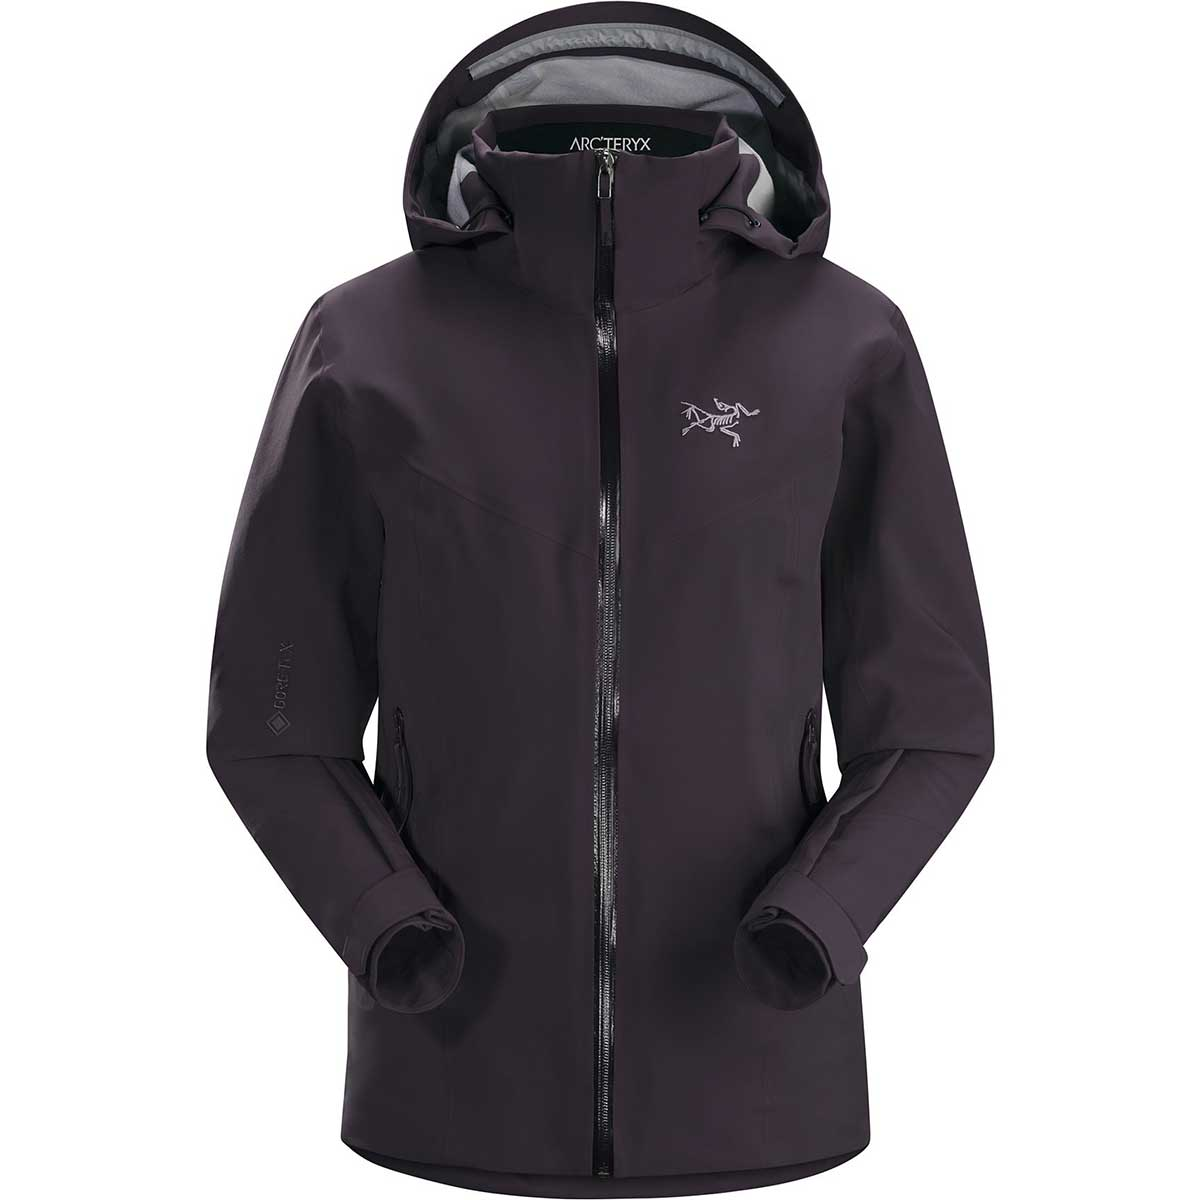 Arcteryx women's Ravenna Jacket in Dimma front view